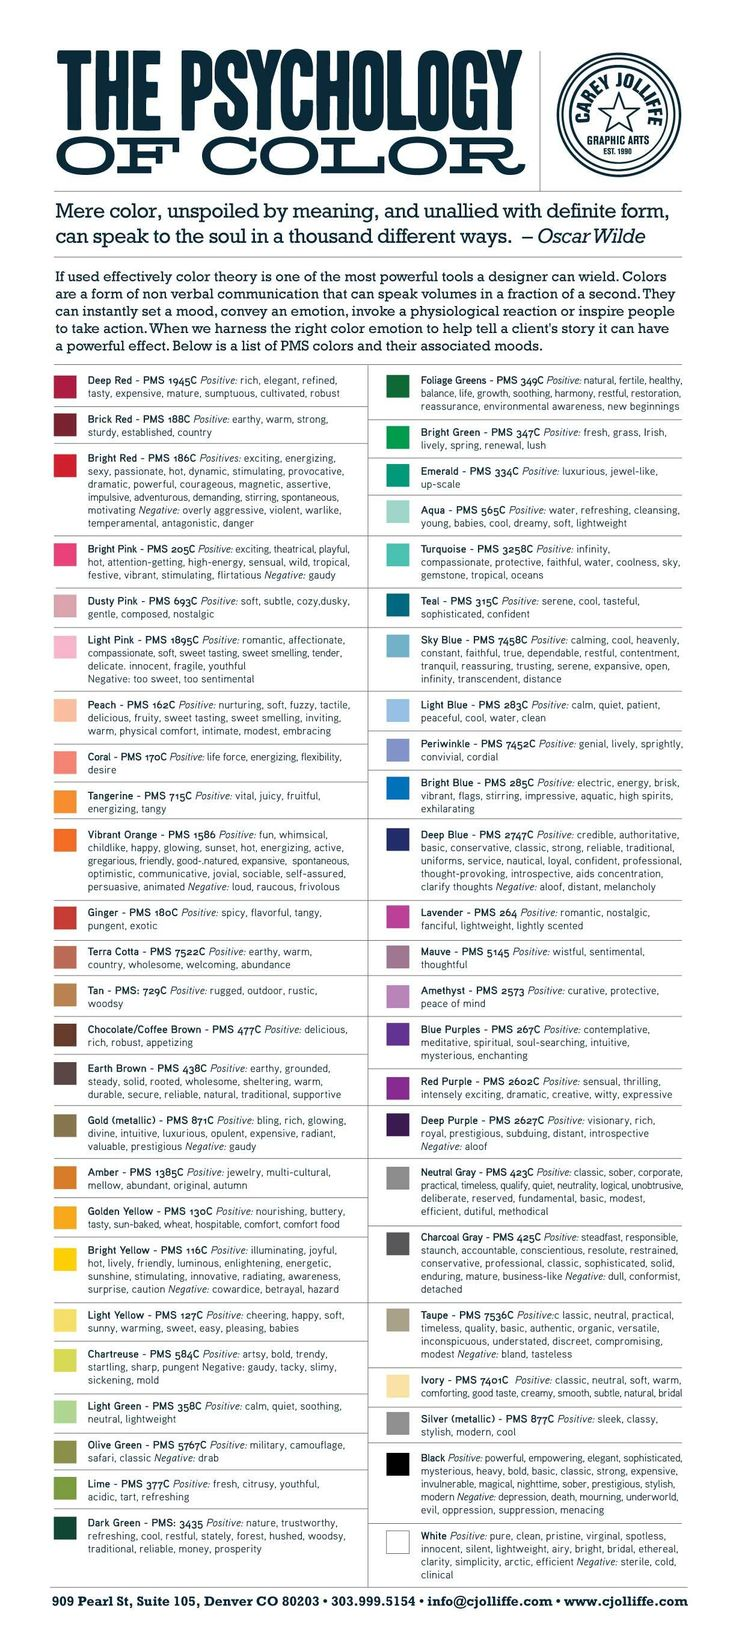 Resume Templates & Design : The Psychology of Colour ...